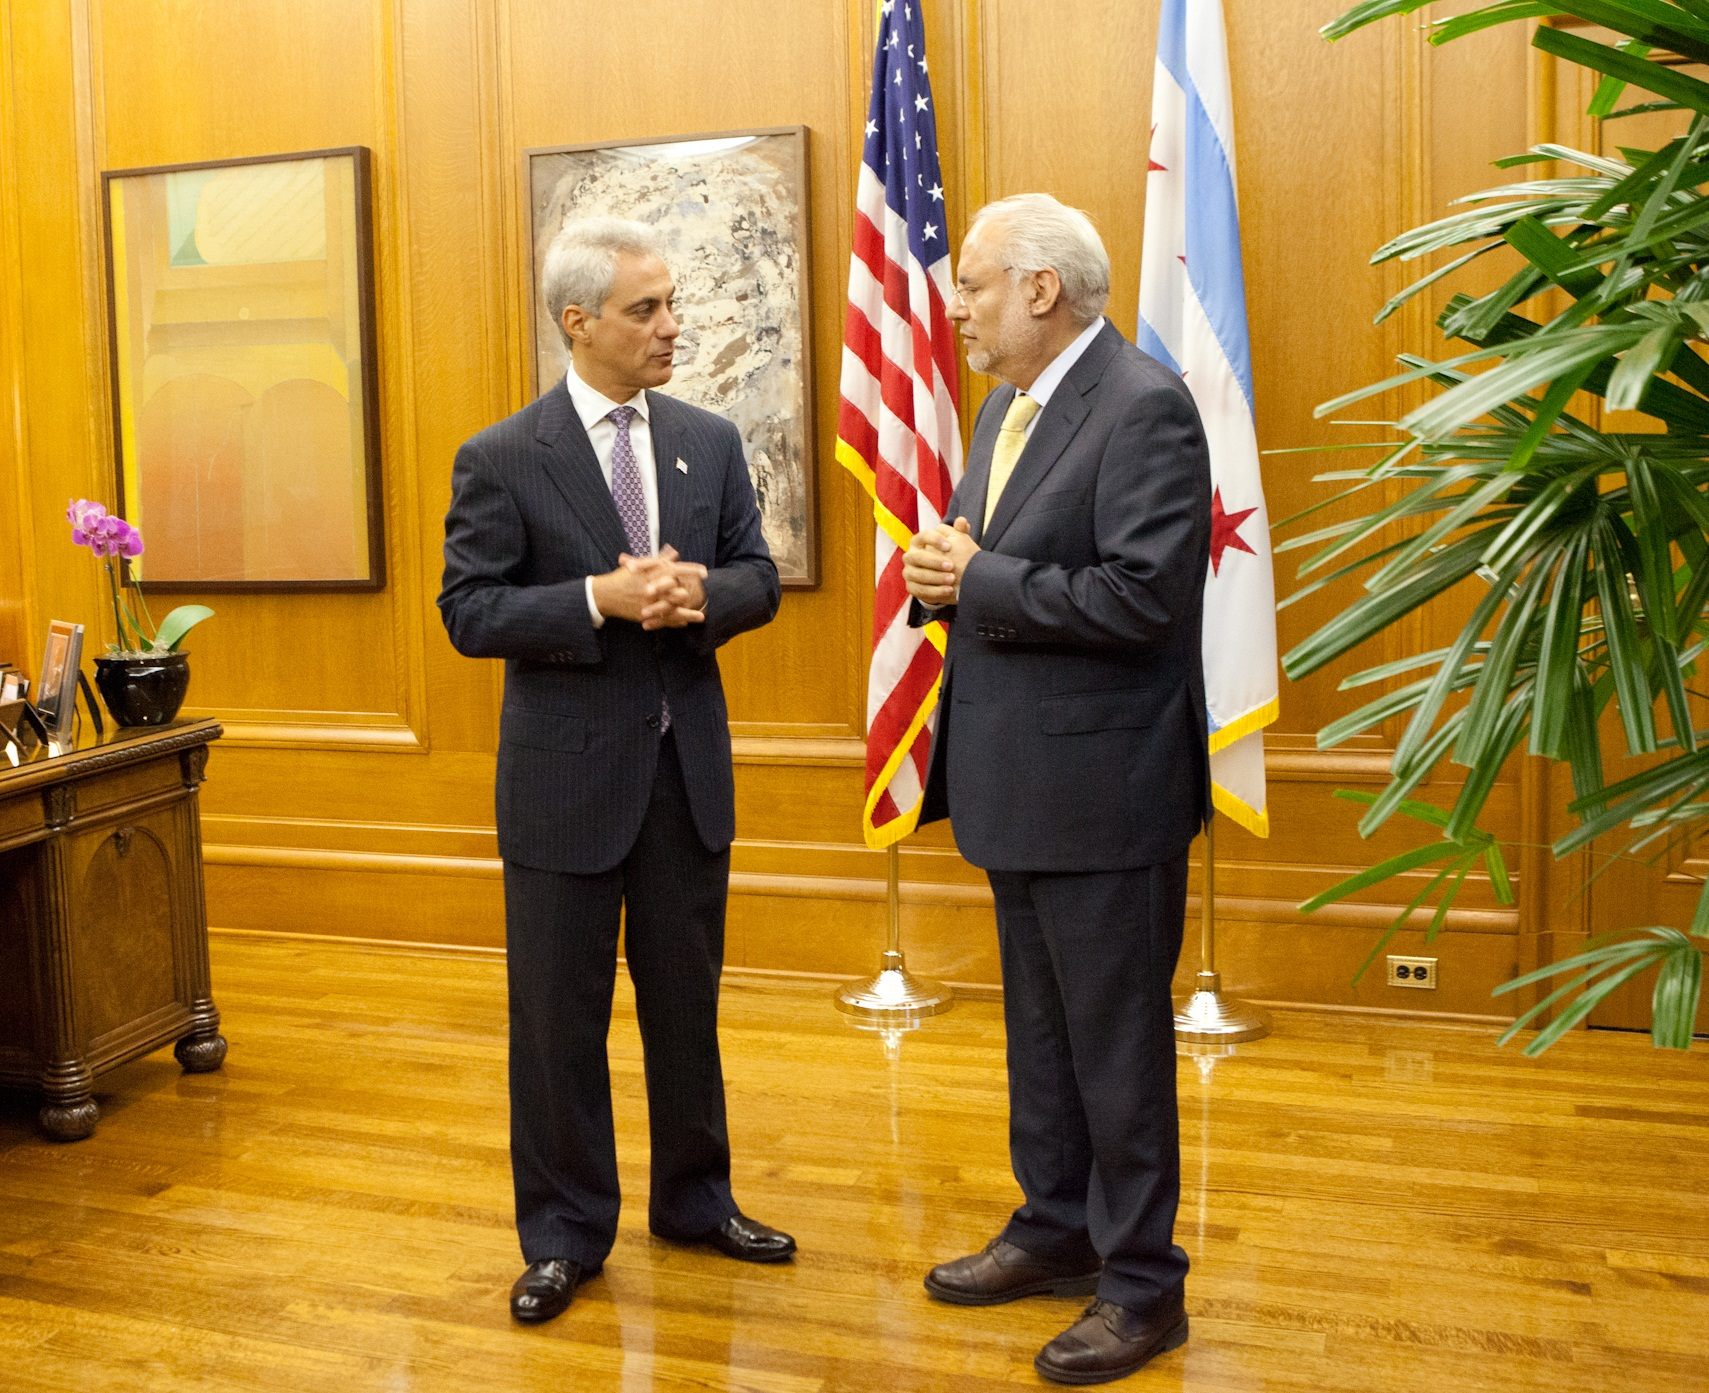 Mayor Emanuel welcomes Carlos Jiménez Macias, the new Consul General of Mexico to Chicago